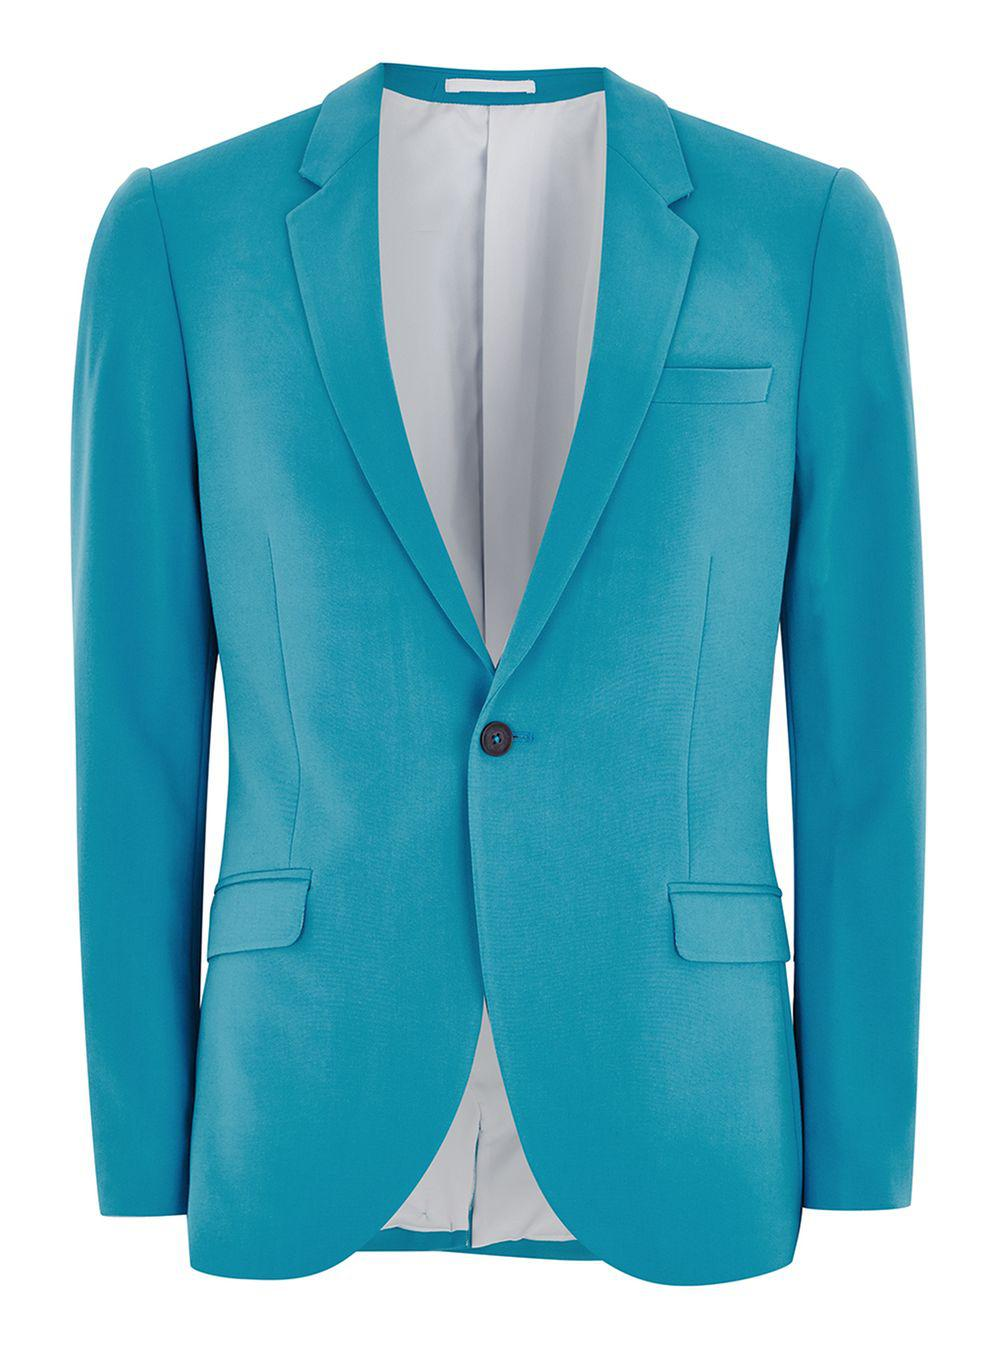 TOPMAN Synthetic Bright Blue Spray On Suit Jacket for Men